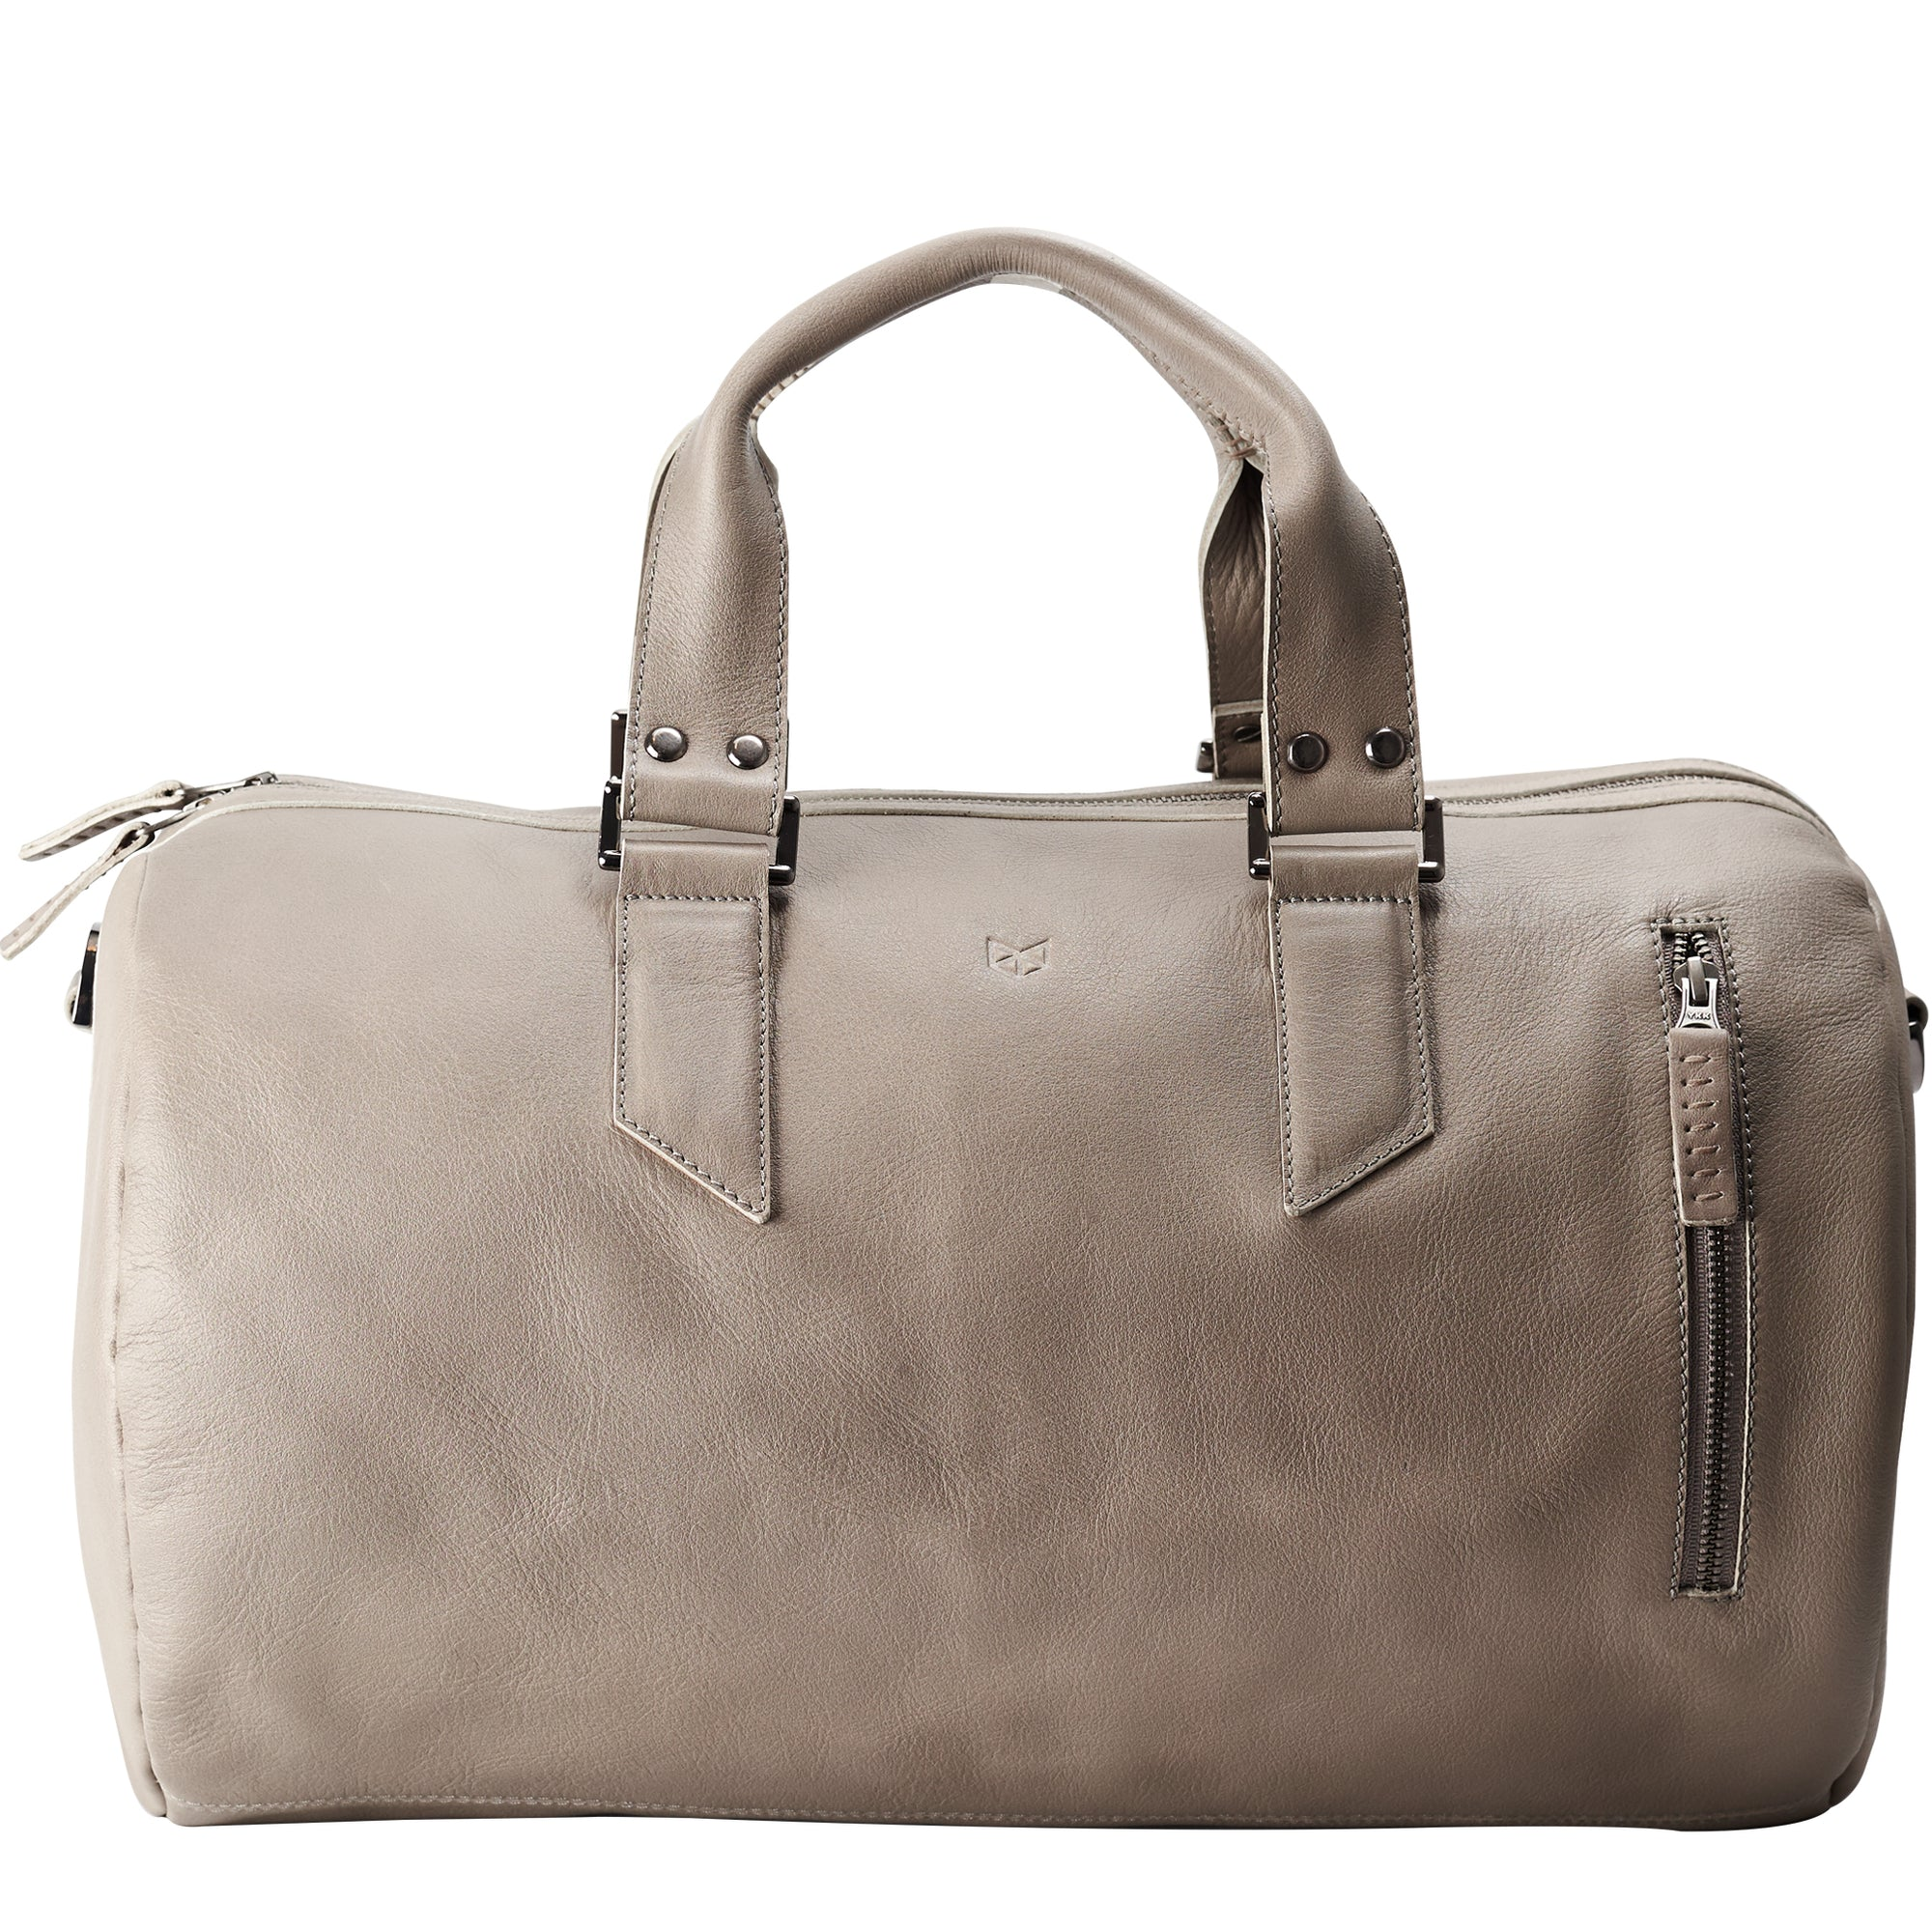 Handmade Substantial Leather Duffle Bag · Grey by Capra - Capra Leather 4186d4405278d